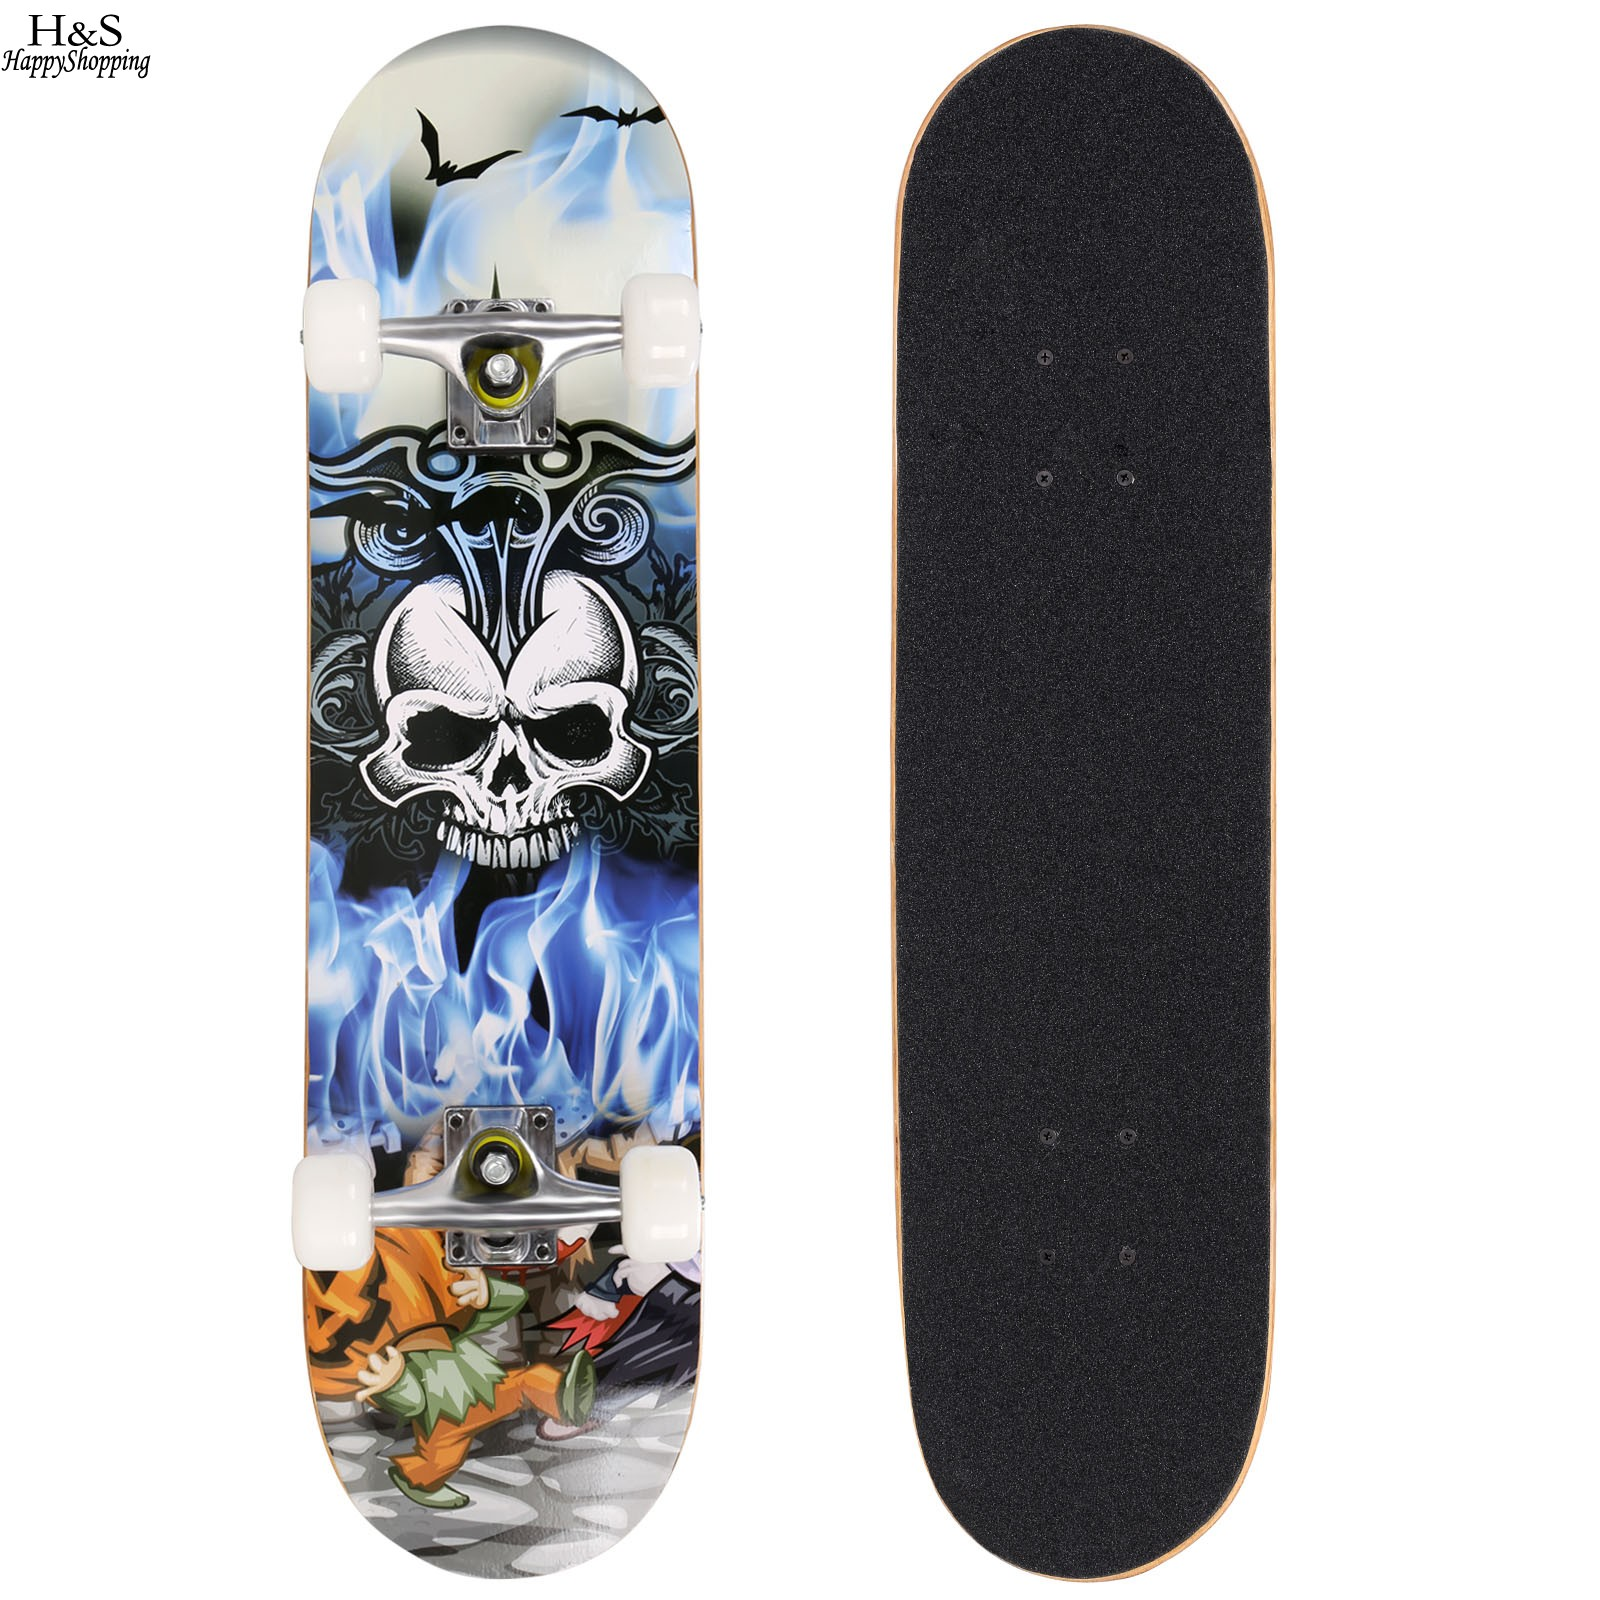 Skateboard Uses: Complete Skateboard PRO Print Wood Skate Board +PU Wheels